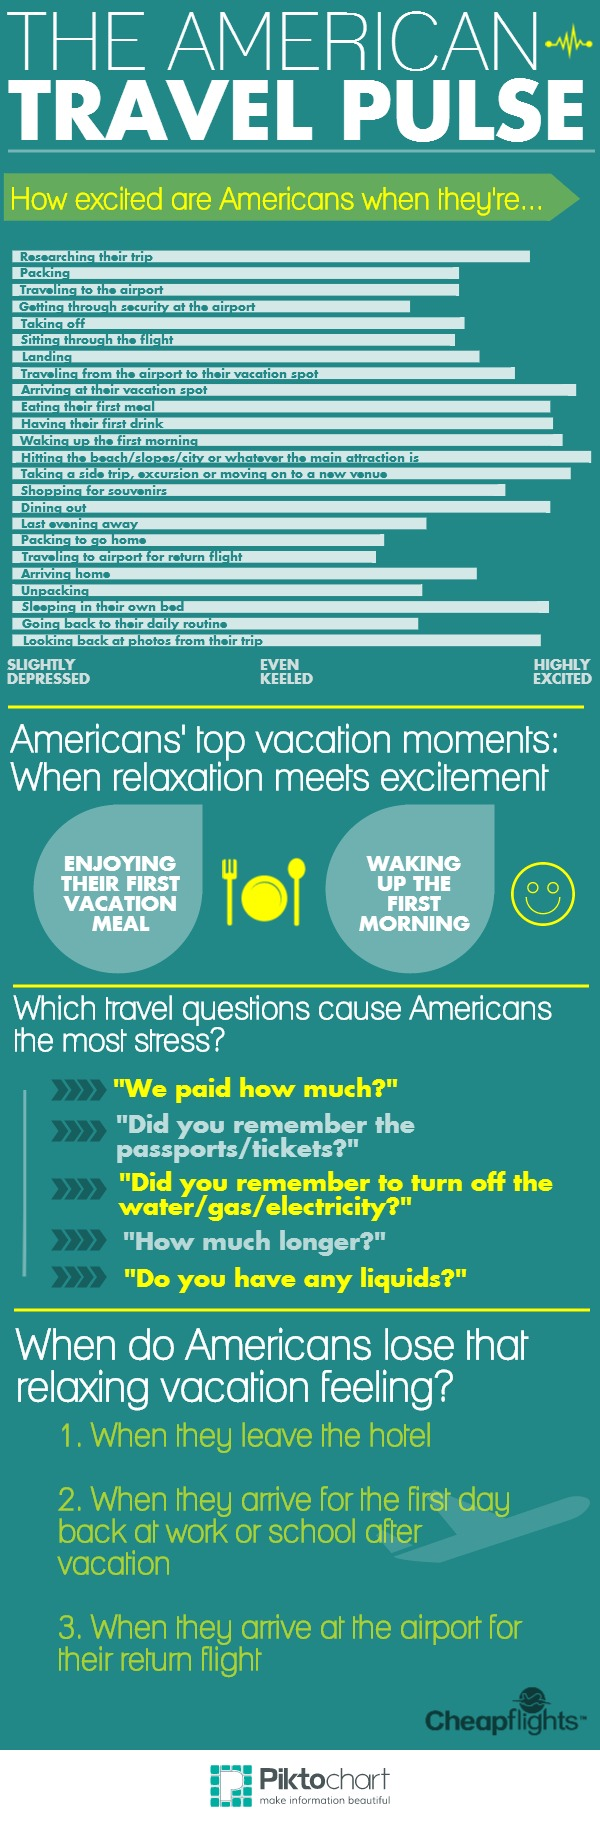 US Travel Pulse Infographic